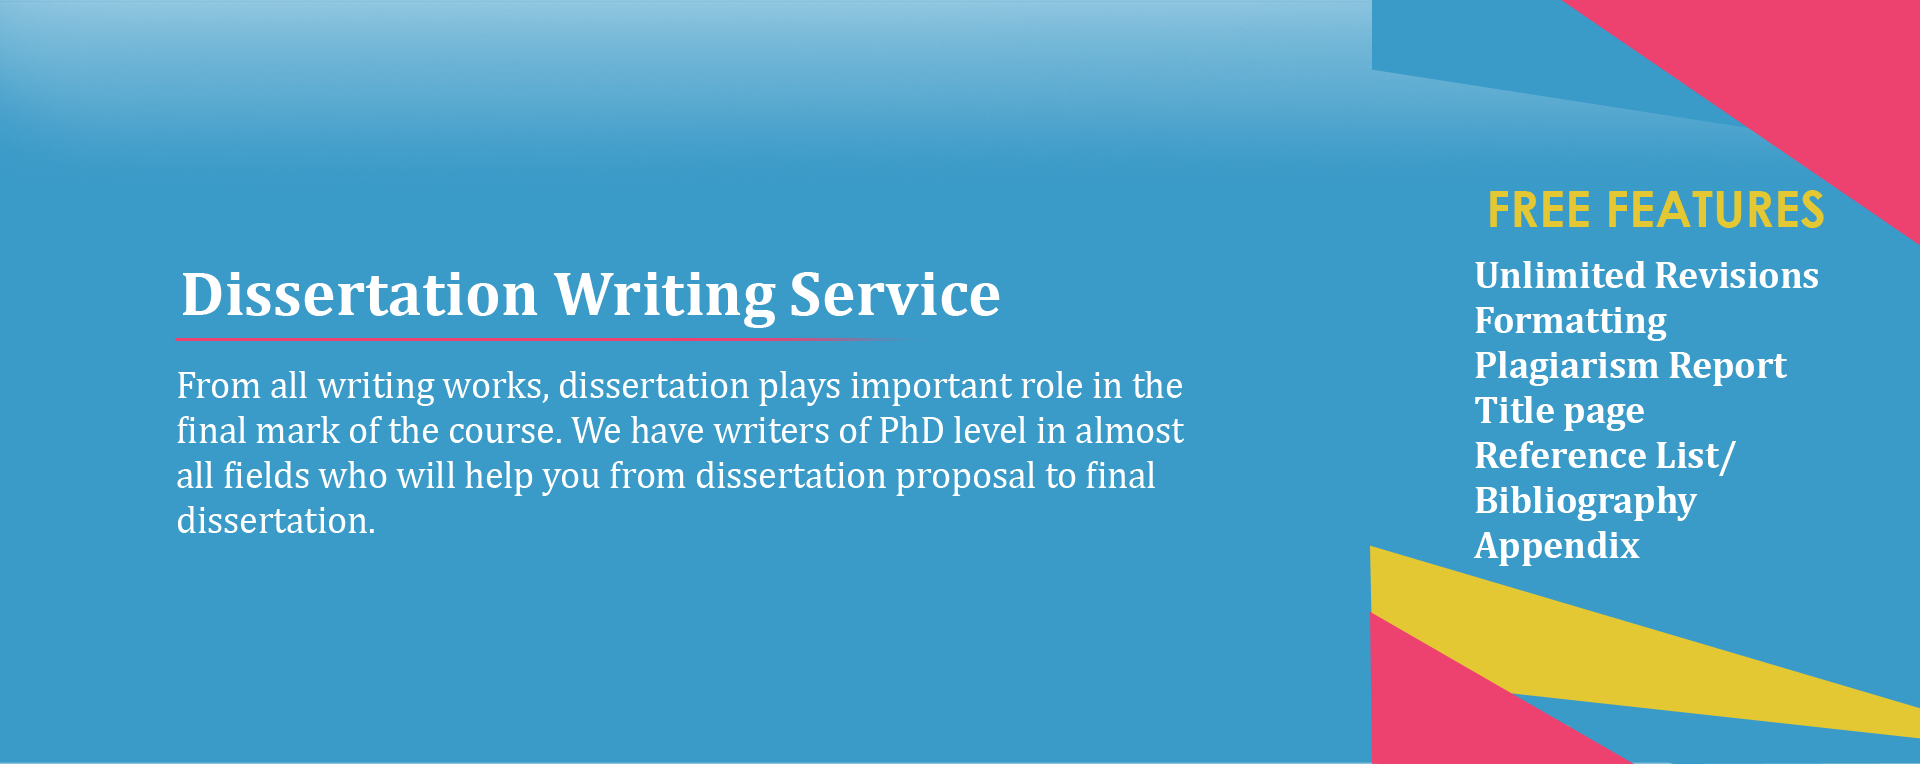 Custom Dissertation Writing Services - Unbeatable Prices in the UK!